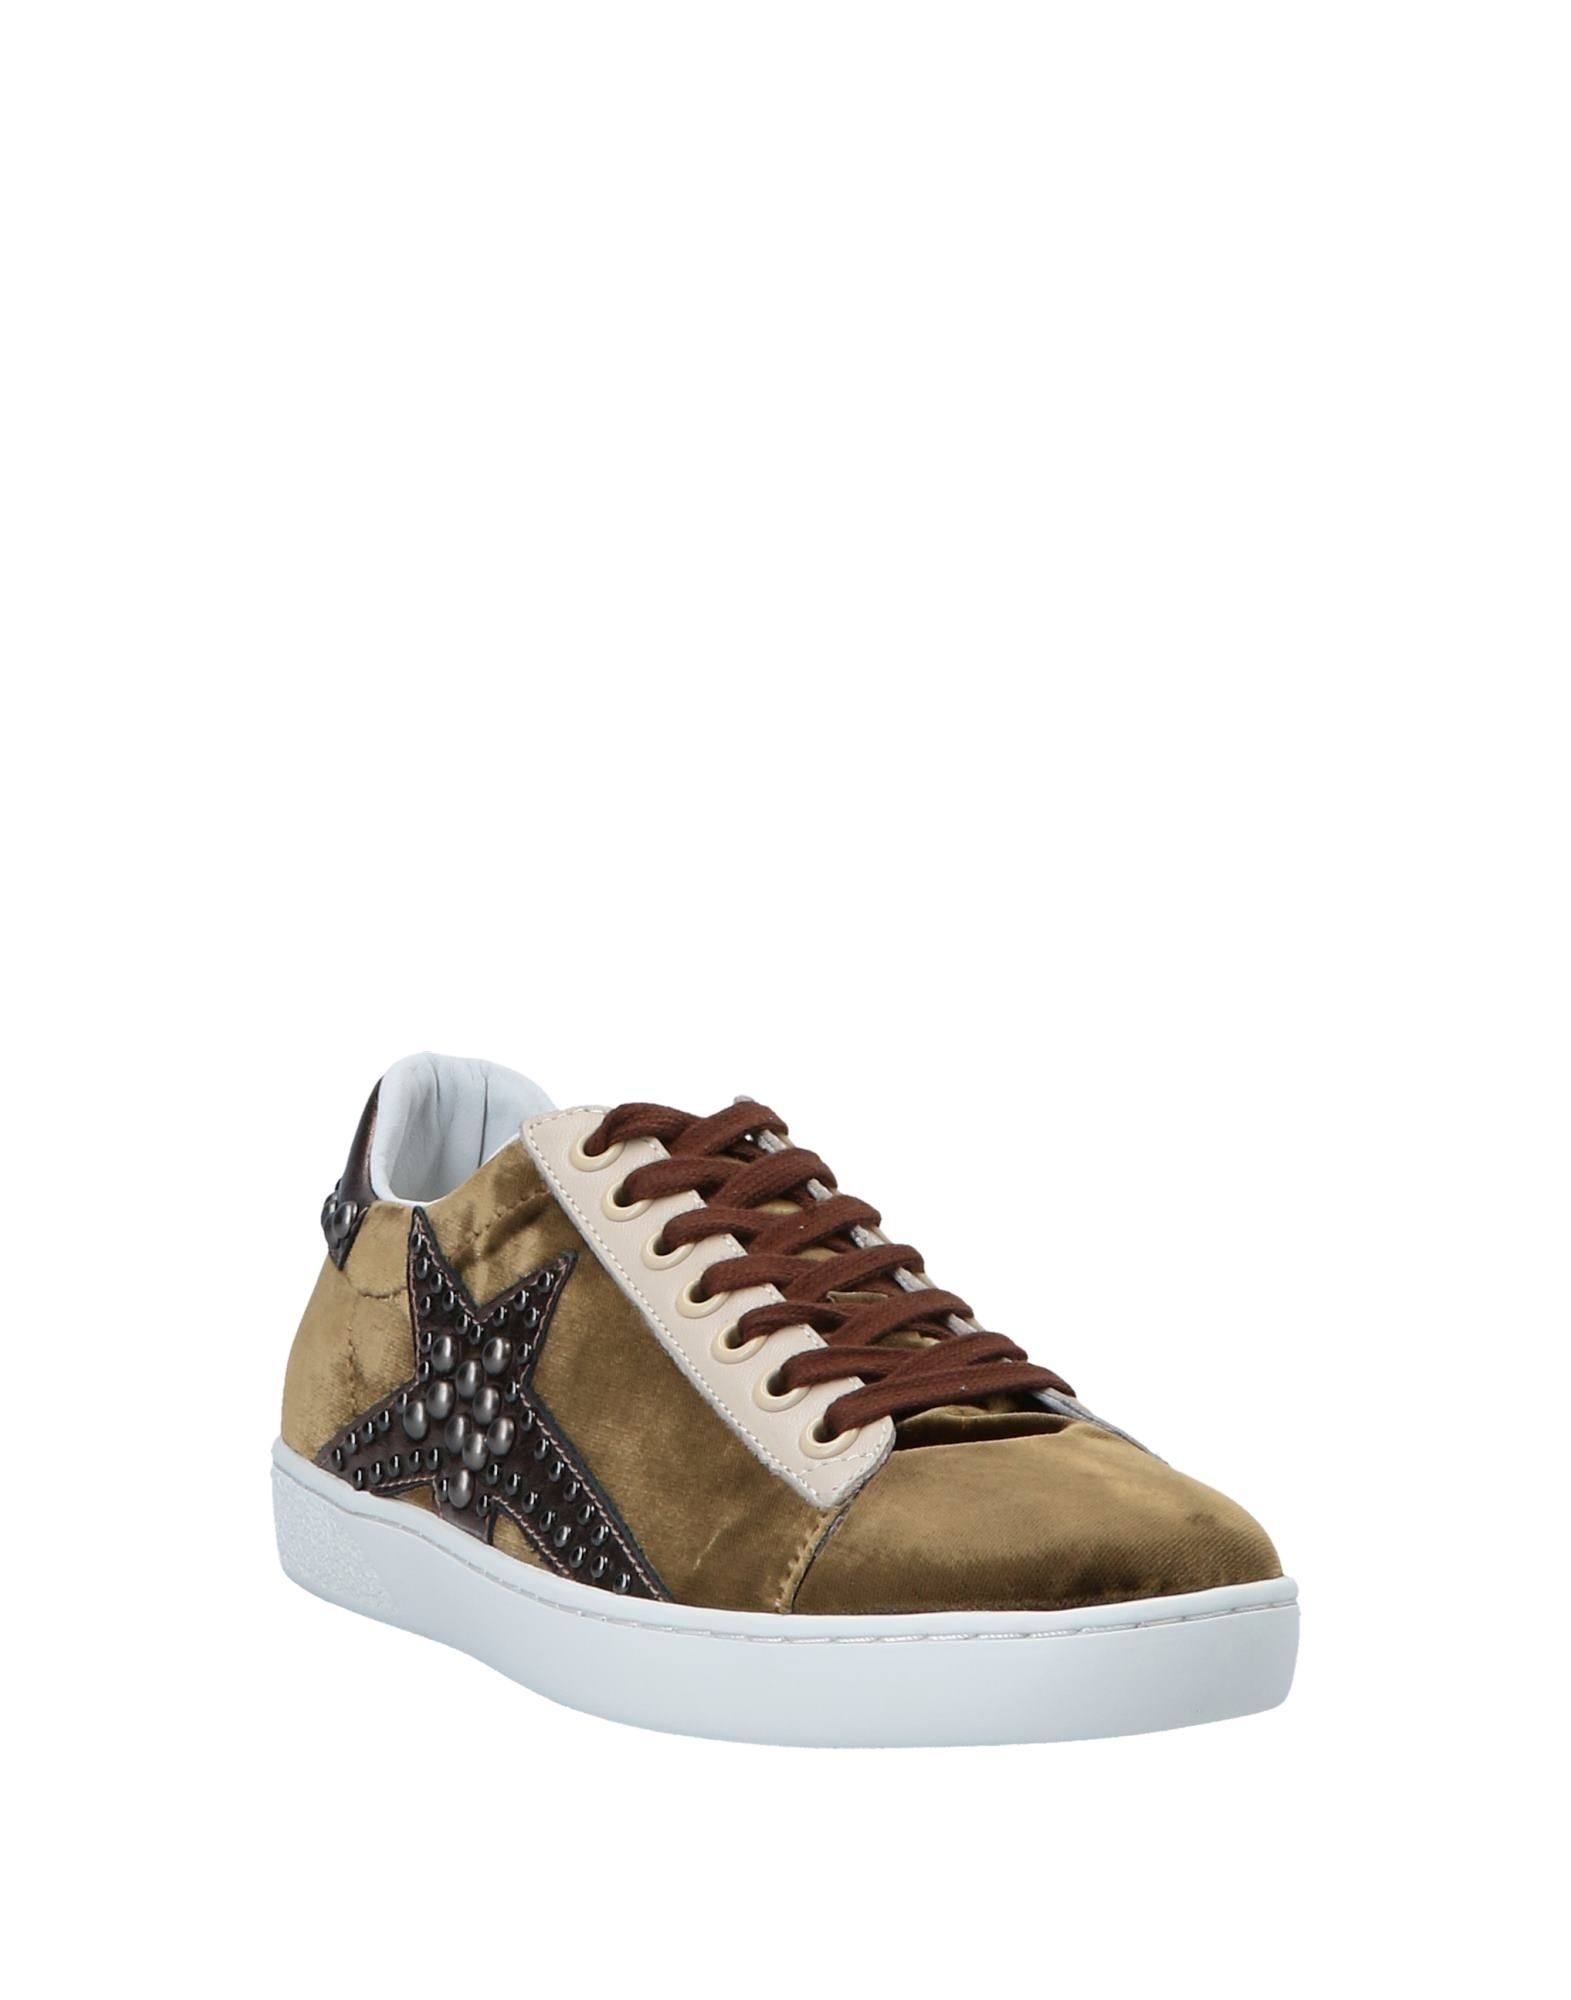 Stilvolle billige Damen Schuhe Lola Cruz Sneakers Damen billige  11547728RG 95087a